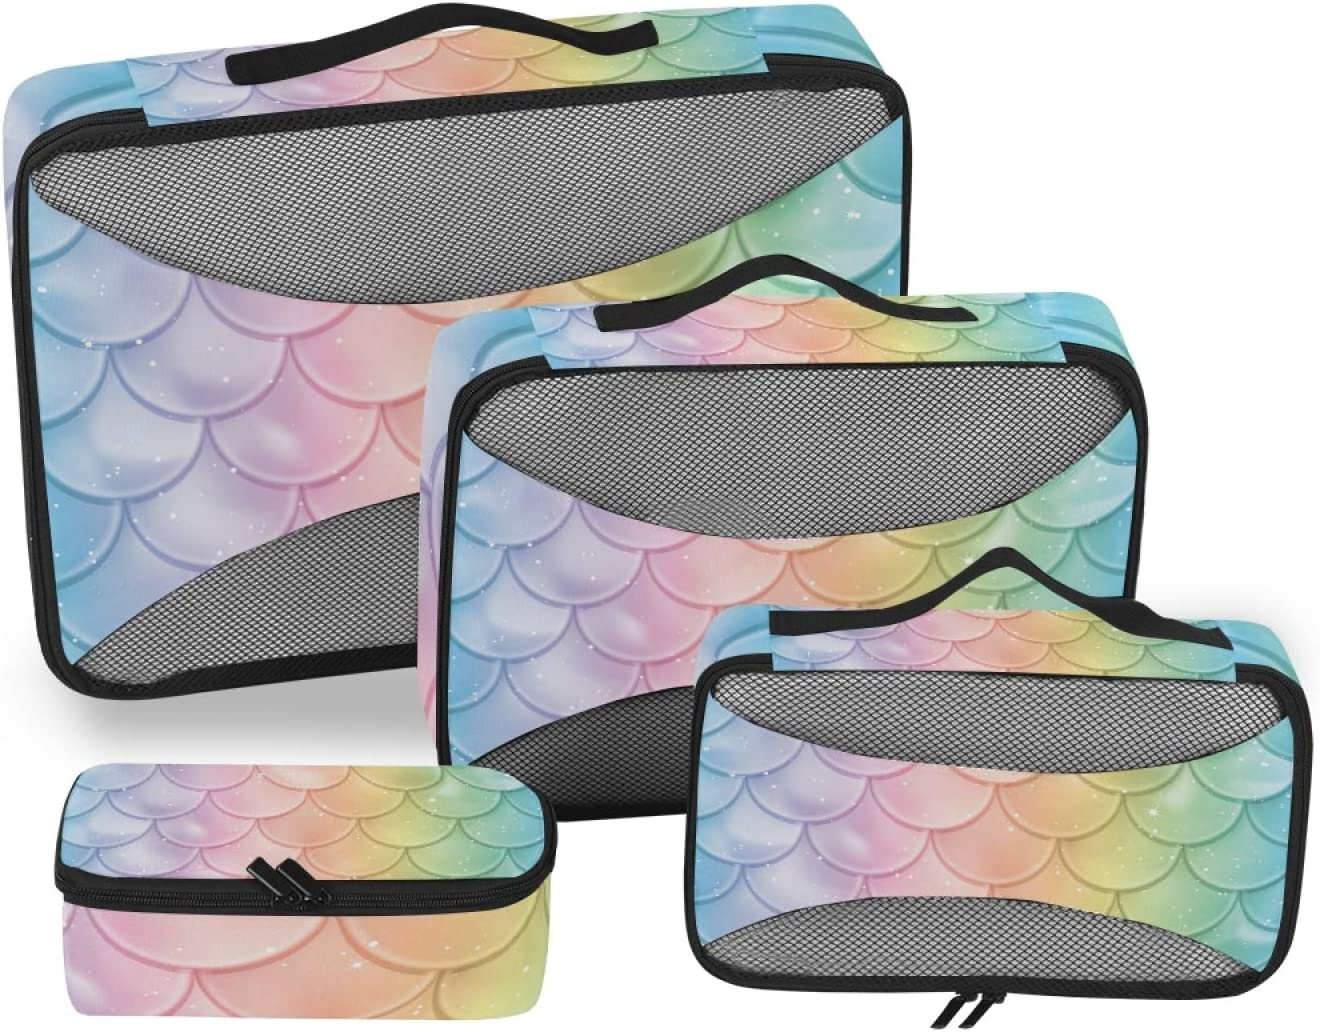 Mermaid Scale Packing Cubes 4-Pcs Travel Accessories S Special price for a limited time 100% quality warranty! Organizer